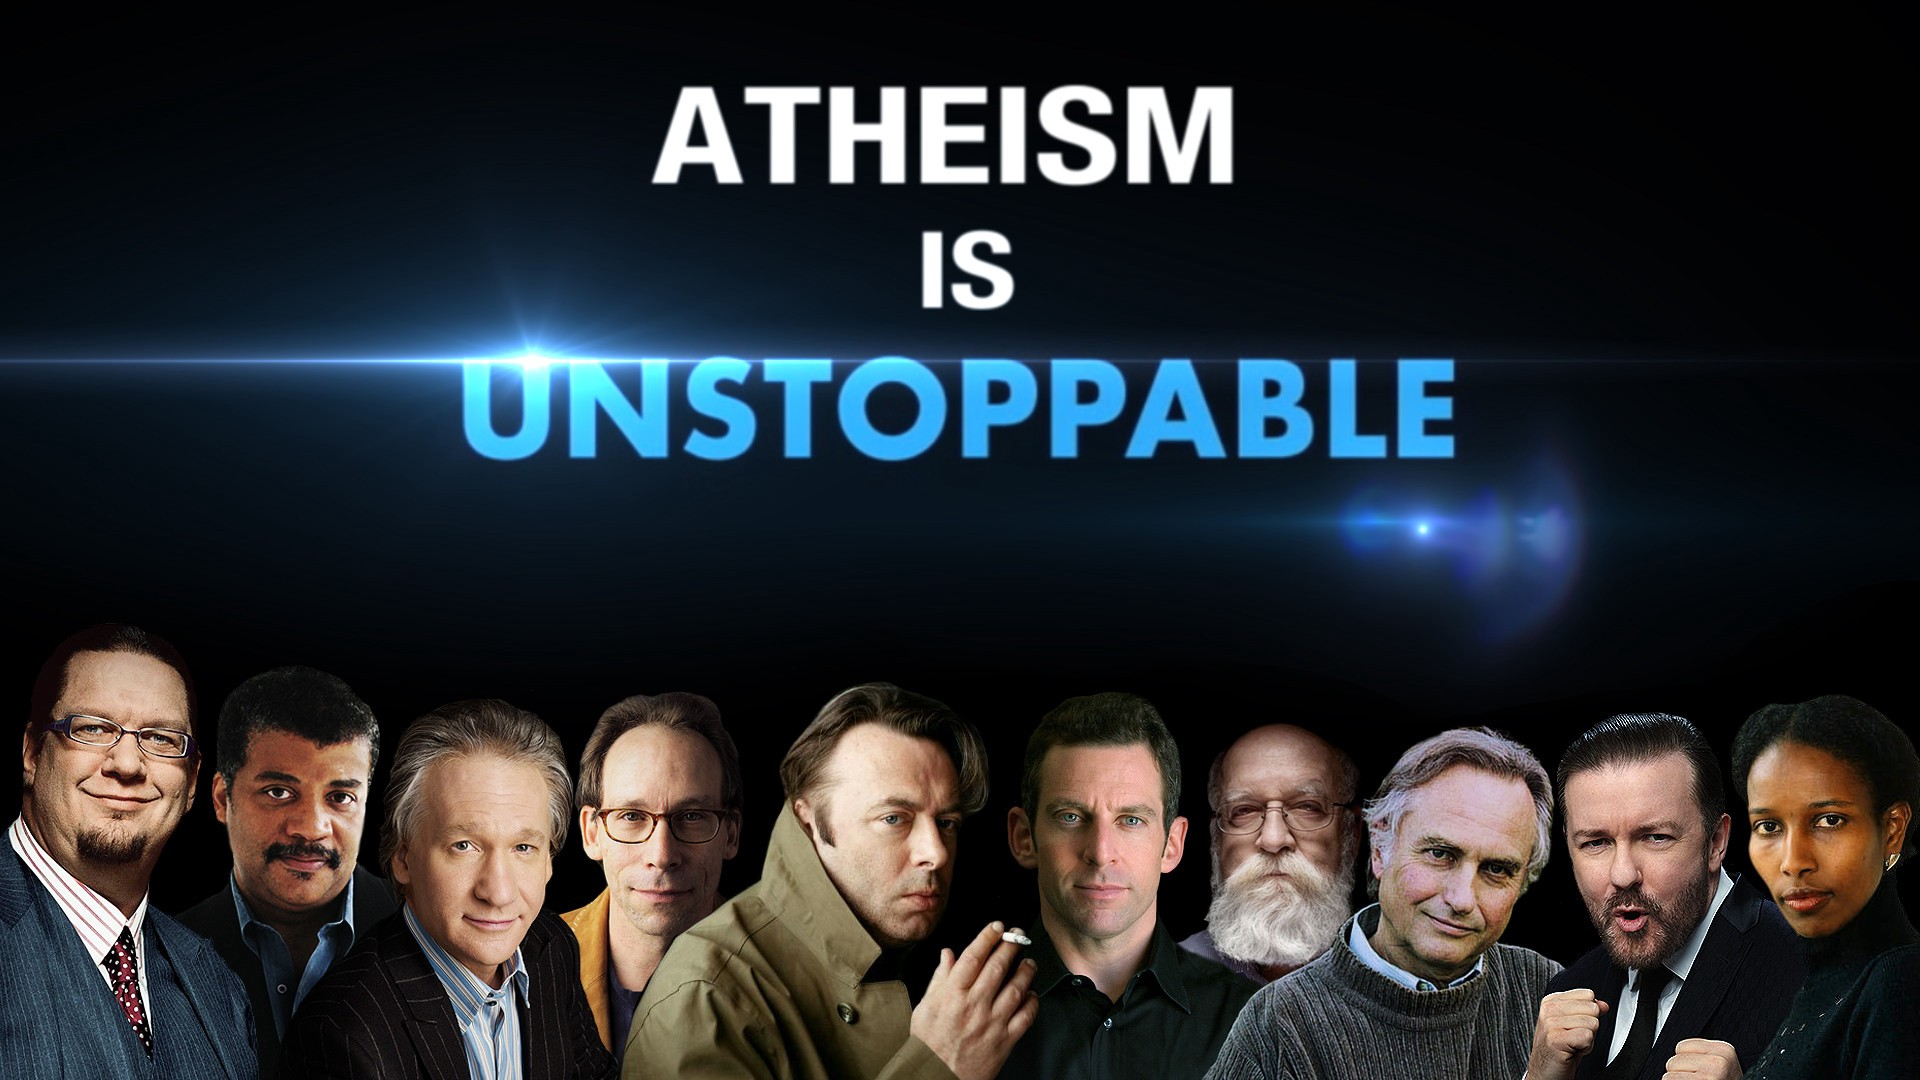 poster with famous atheists